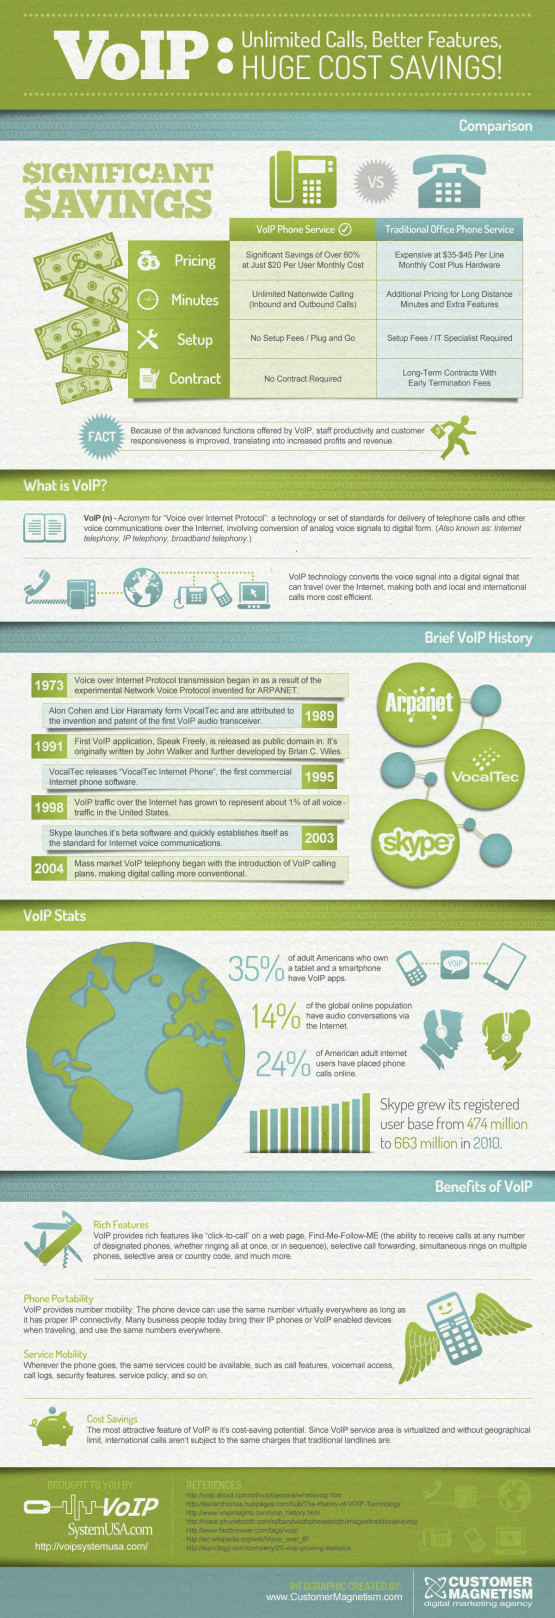 VoIP: the world of a growing technology